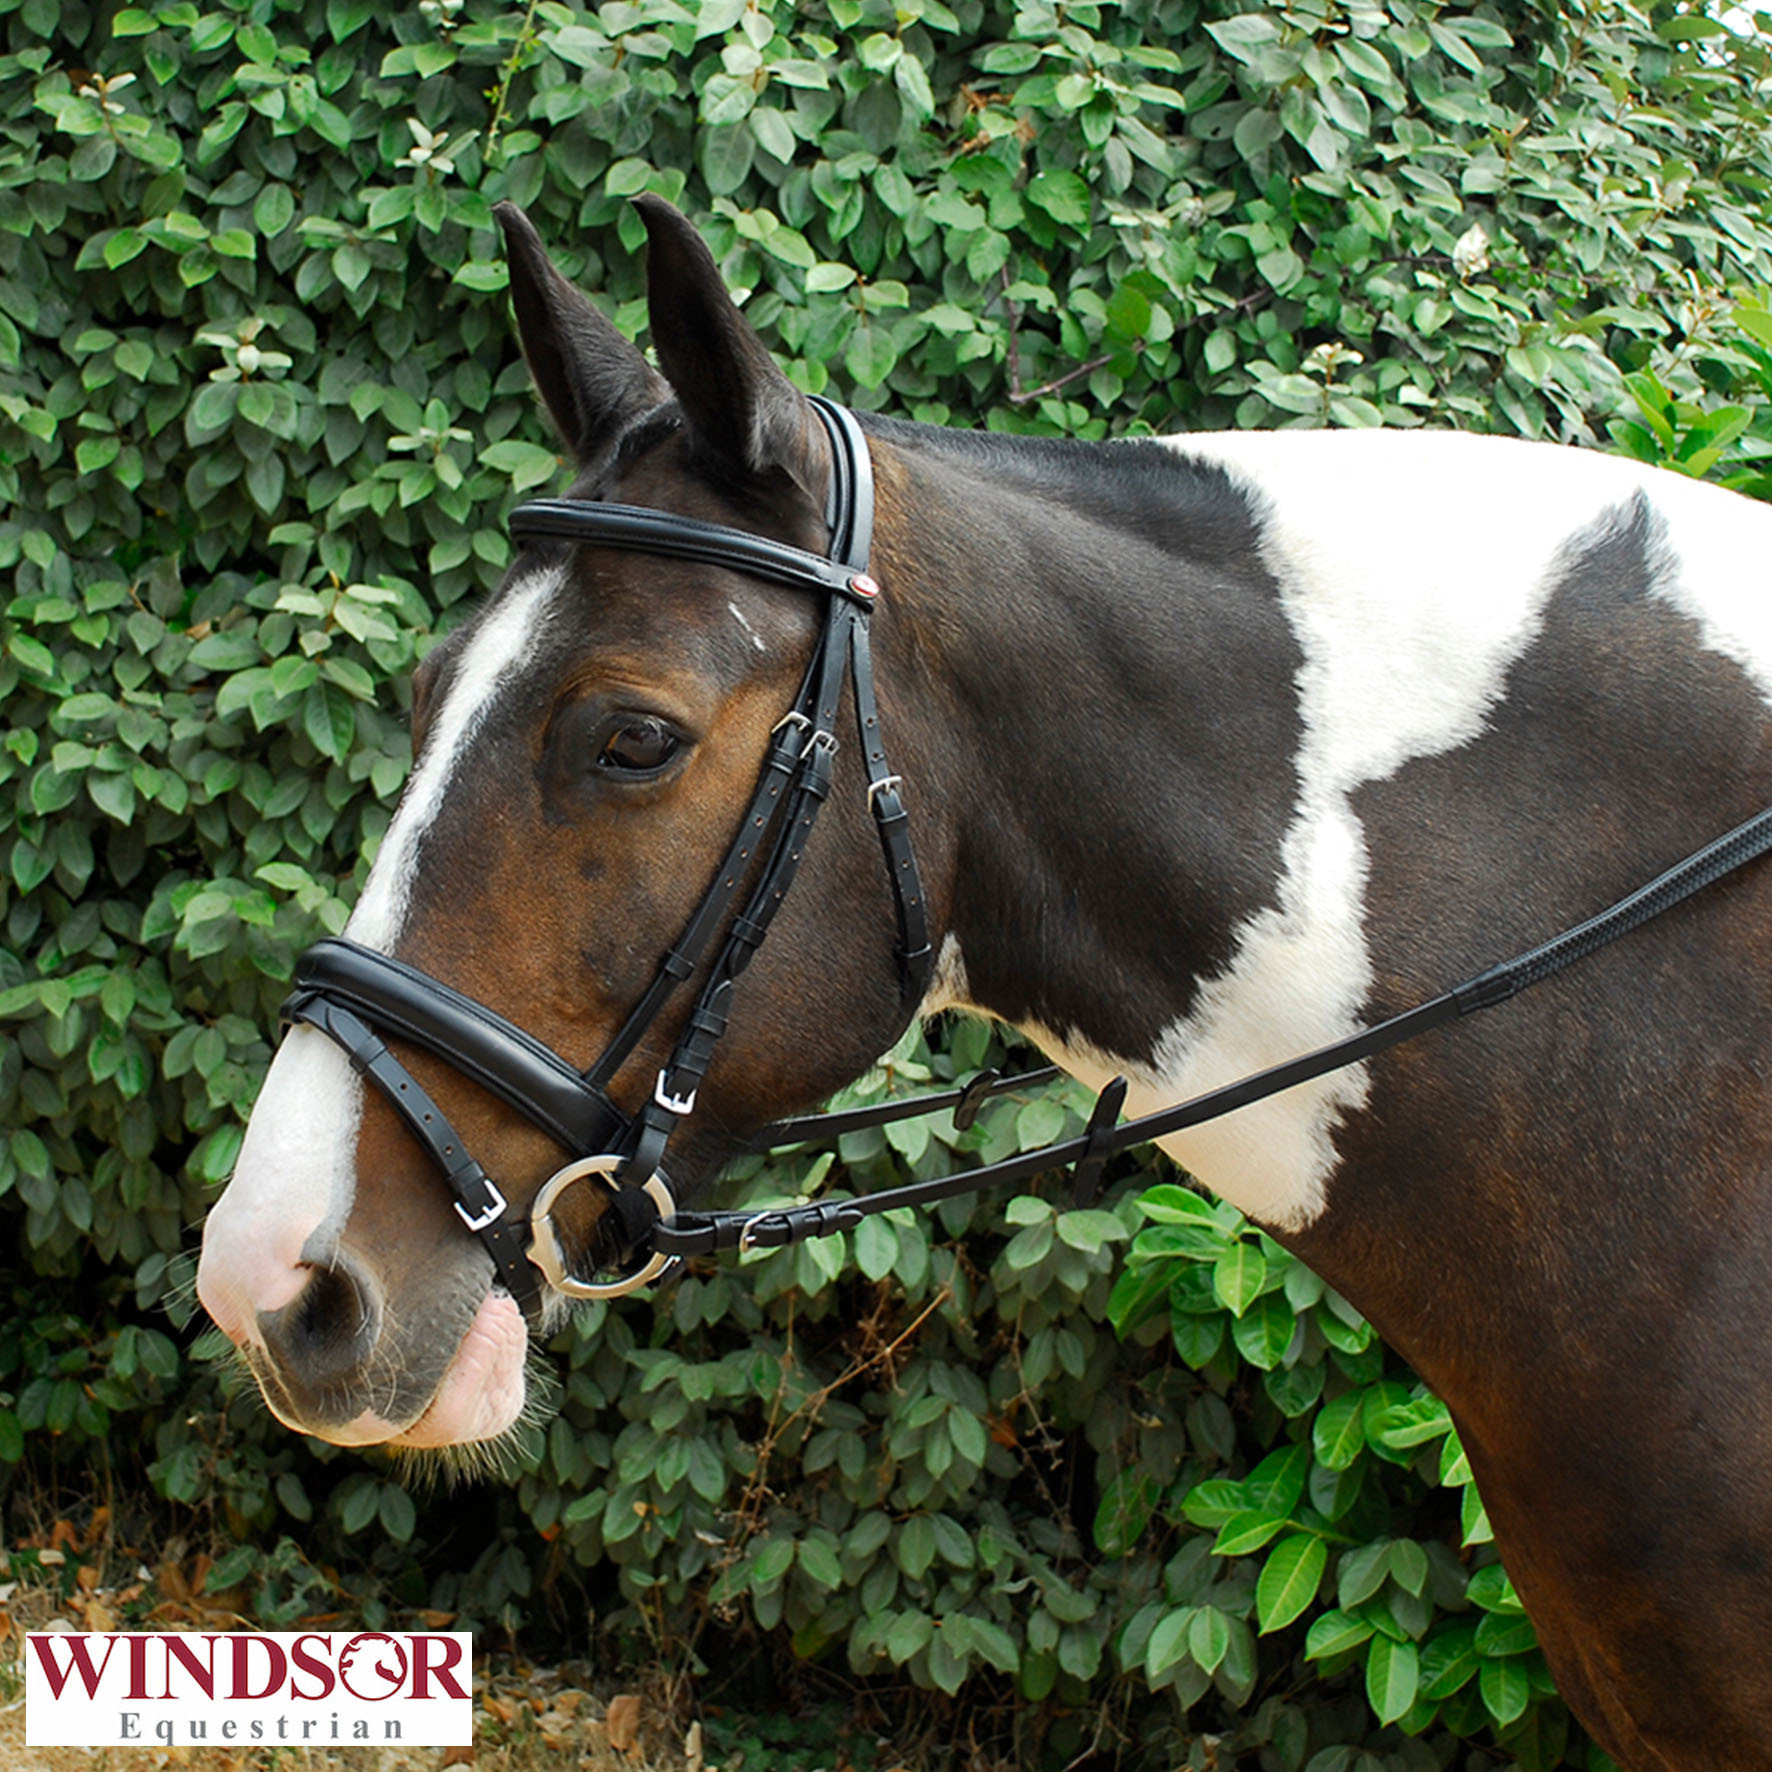 Windsor Leather Comfort Bridle With Crank Style Flash Noseband